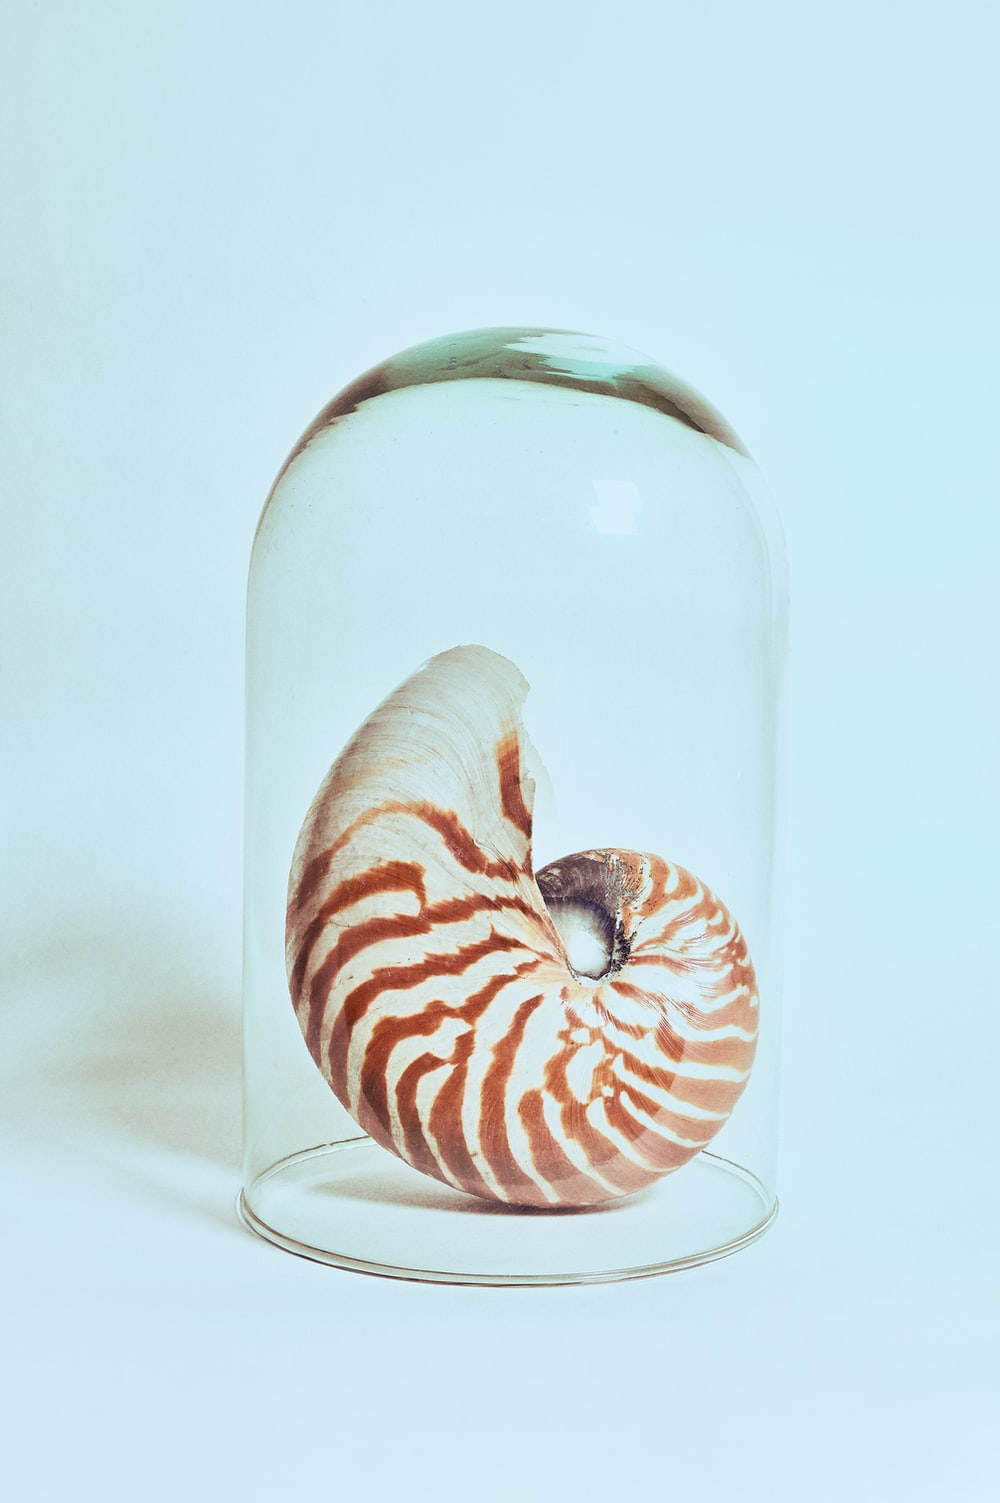 white and brown snail in clear glass bottle